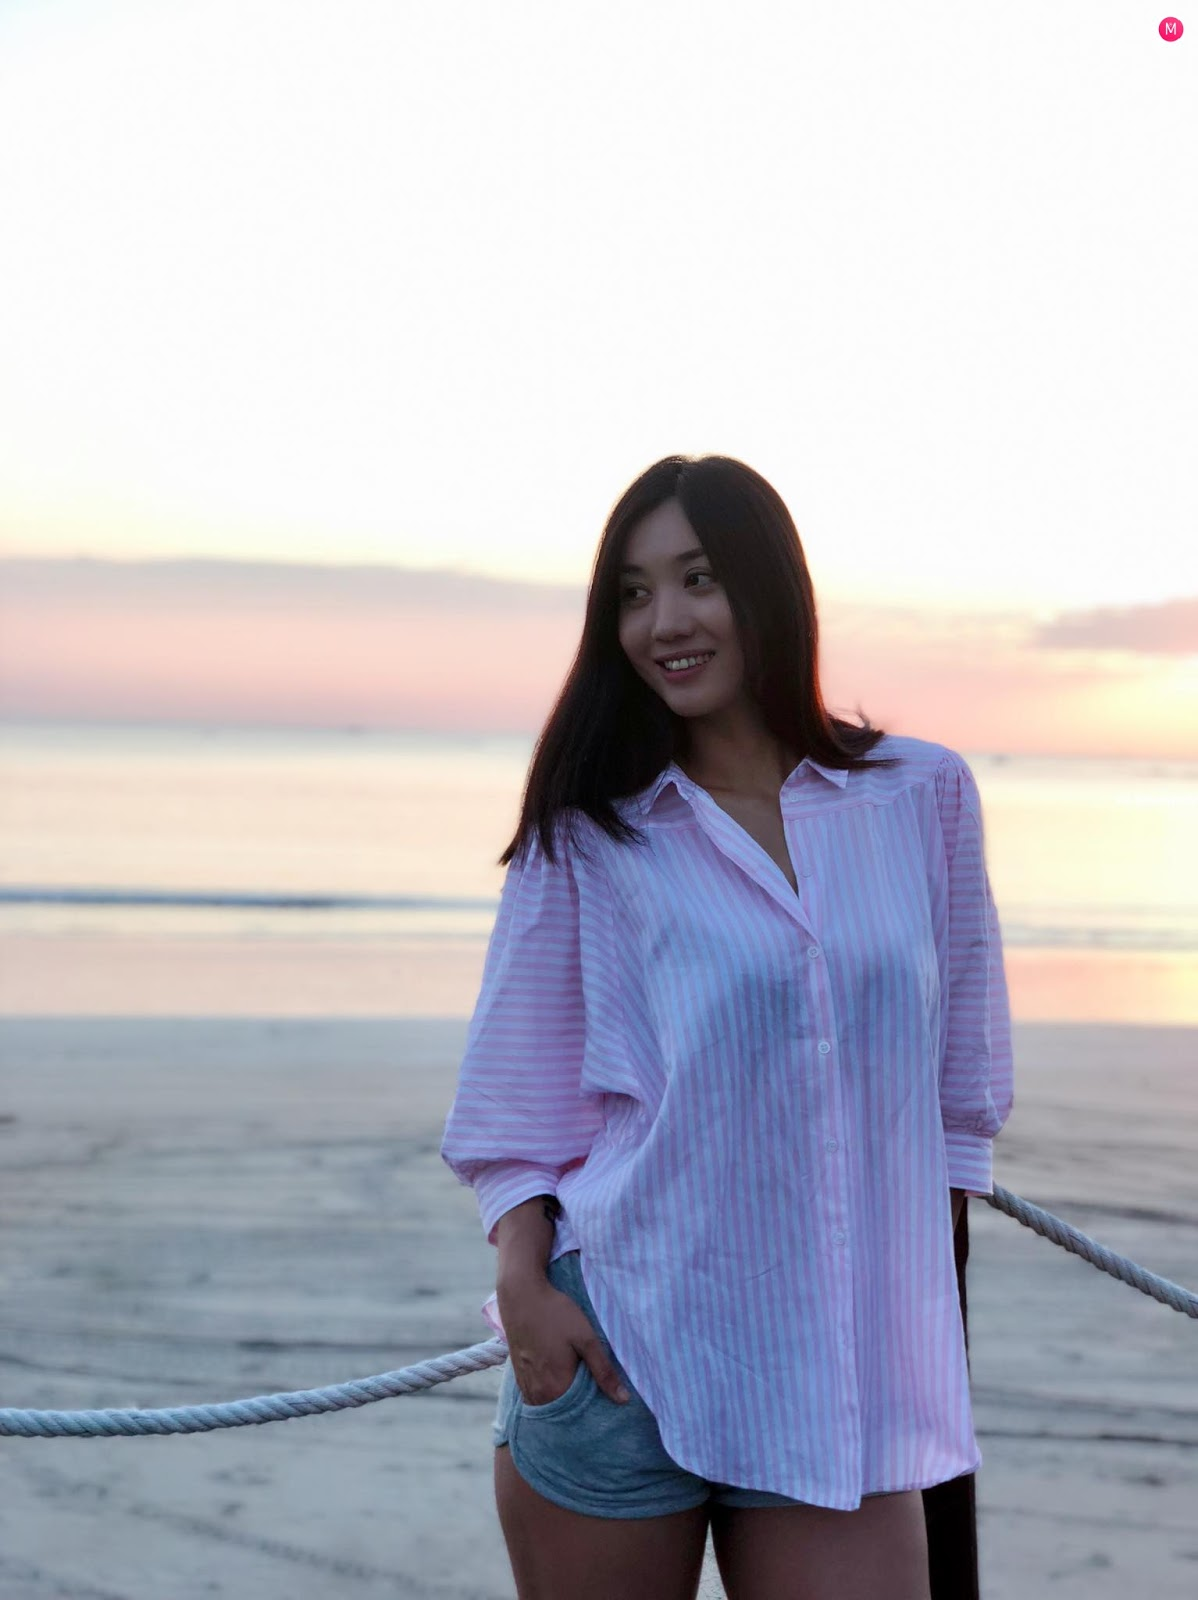 Lu Lu Aung Photo Collection In November , Beach , Sunset Photoshoots